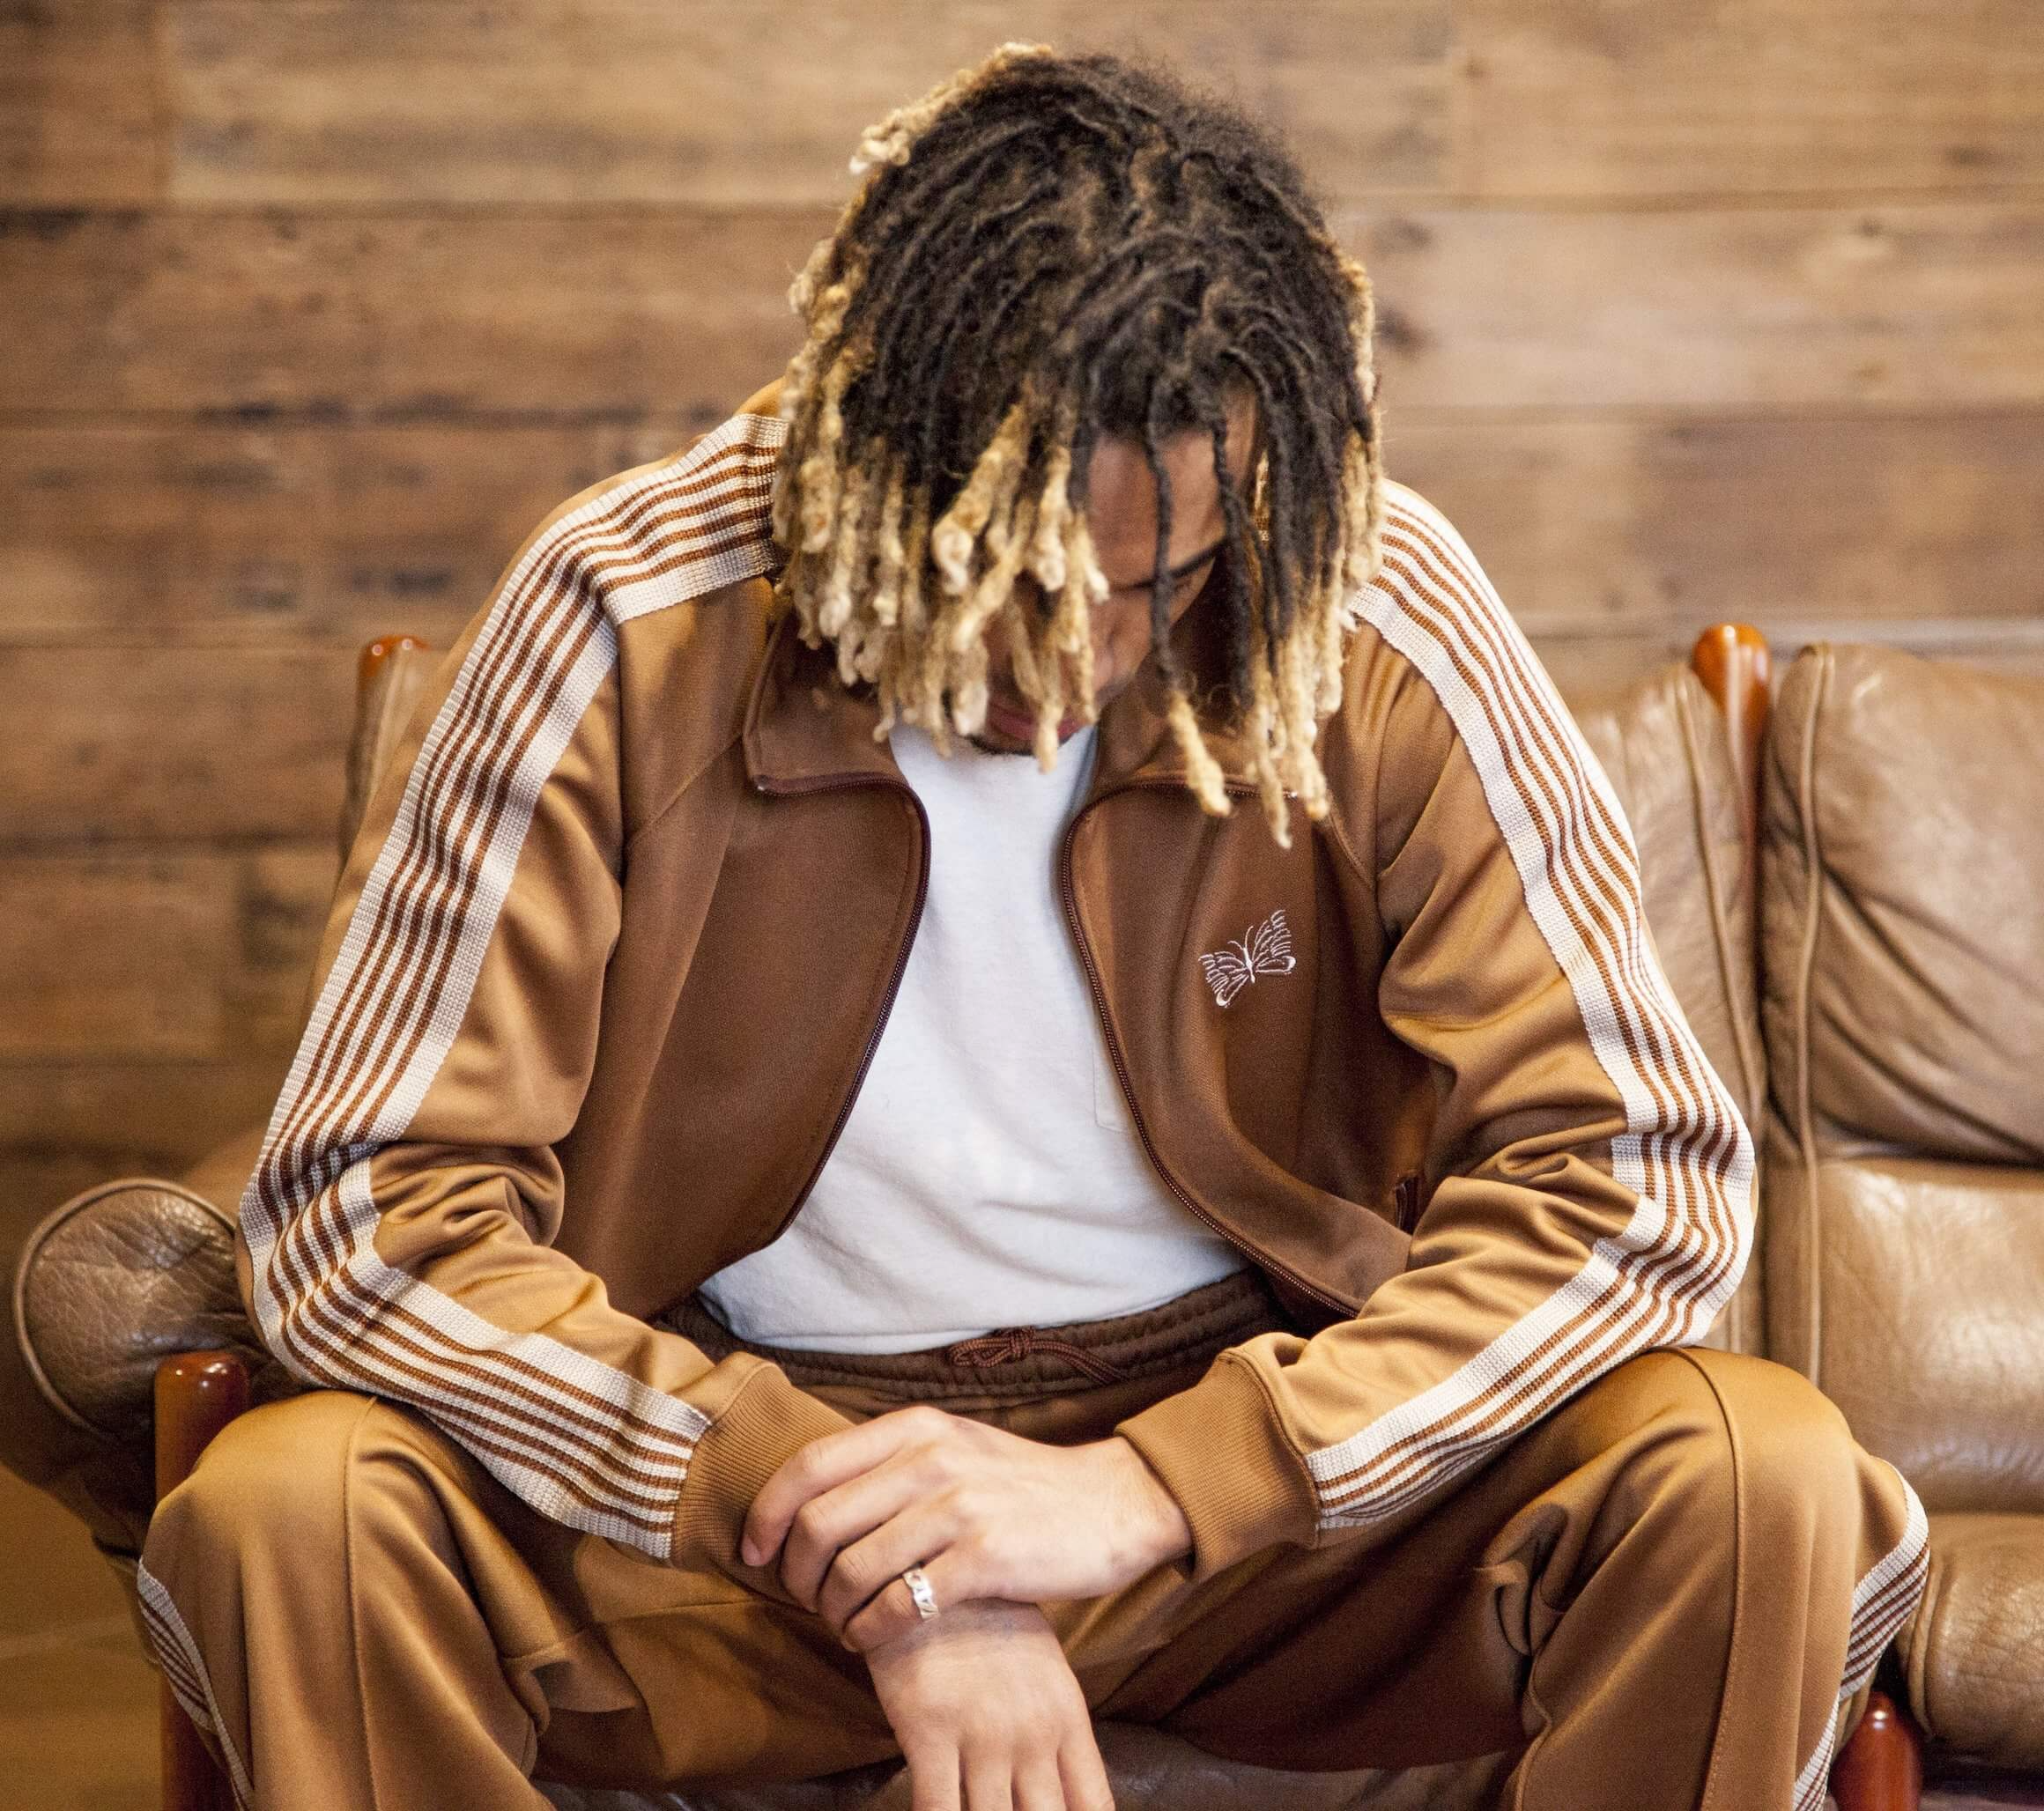 needles japan nepenthes tracksuit